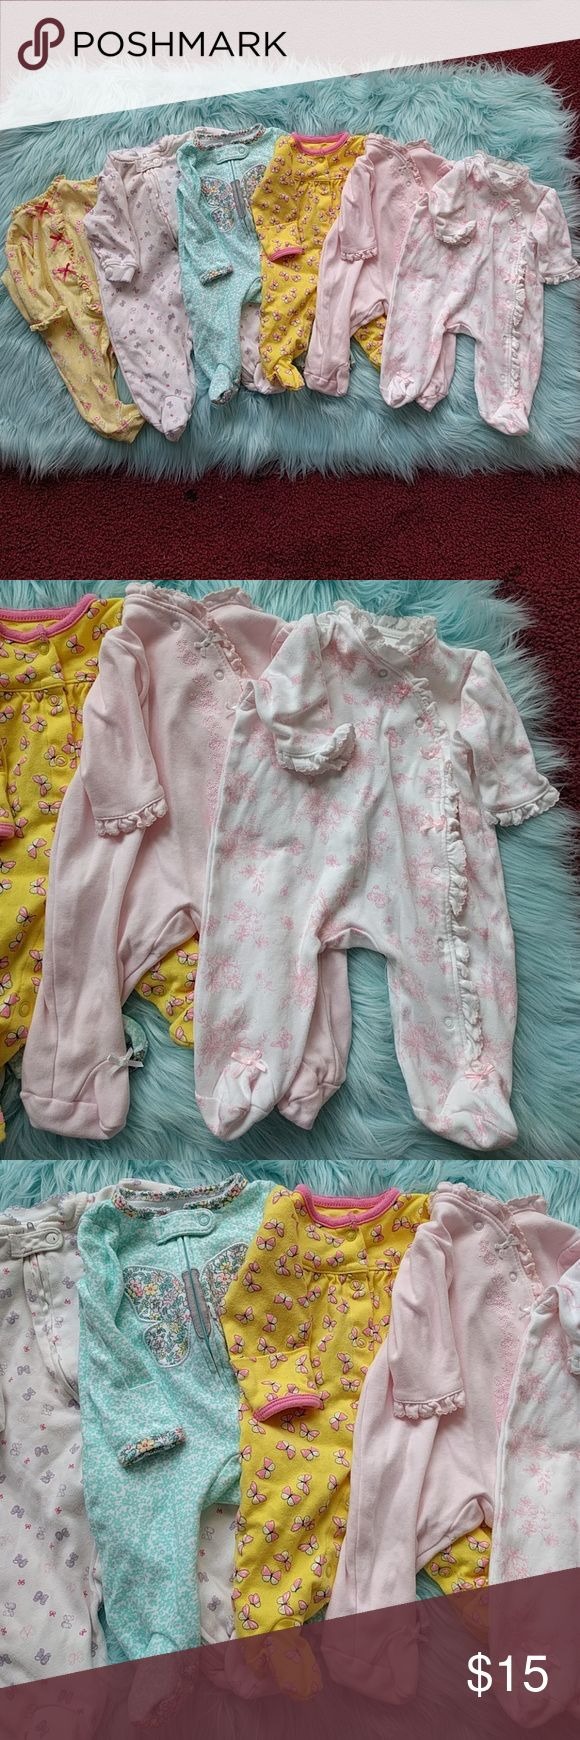 6pc Footsies 5 Newborn and 1 0-3M 5 NB Footsies we're bought brand-new and used once 1 Faded Glory Footsie 0-3M was a hand me down but still in very good condition All have no rips and no stains Little Me One Pieces Footies